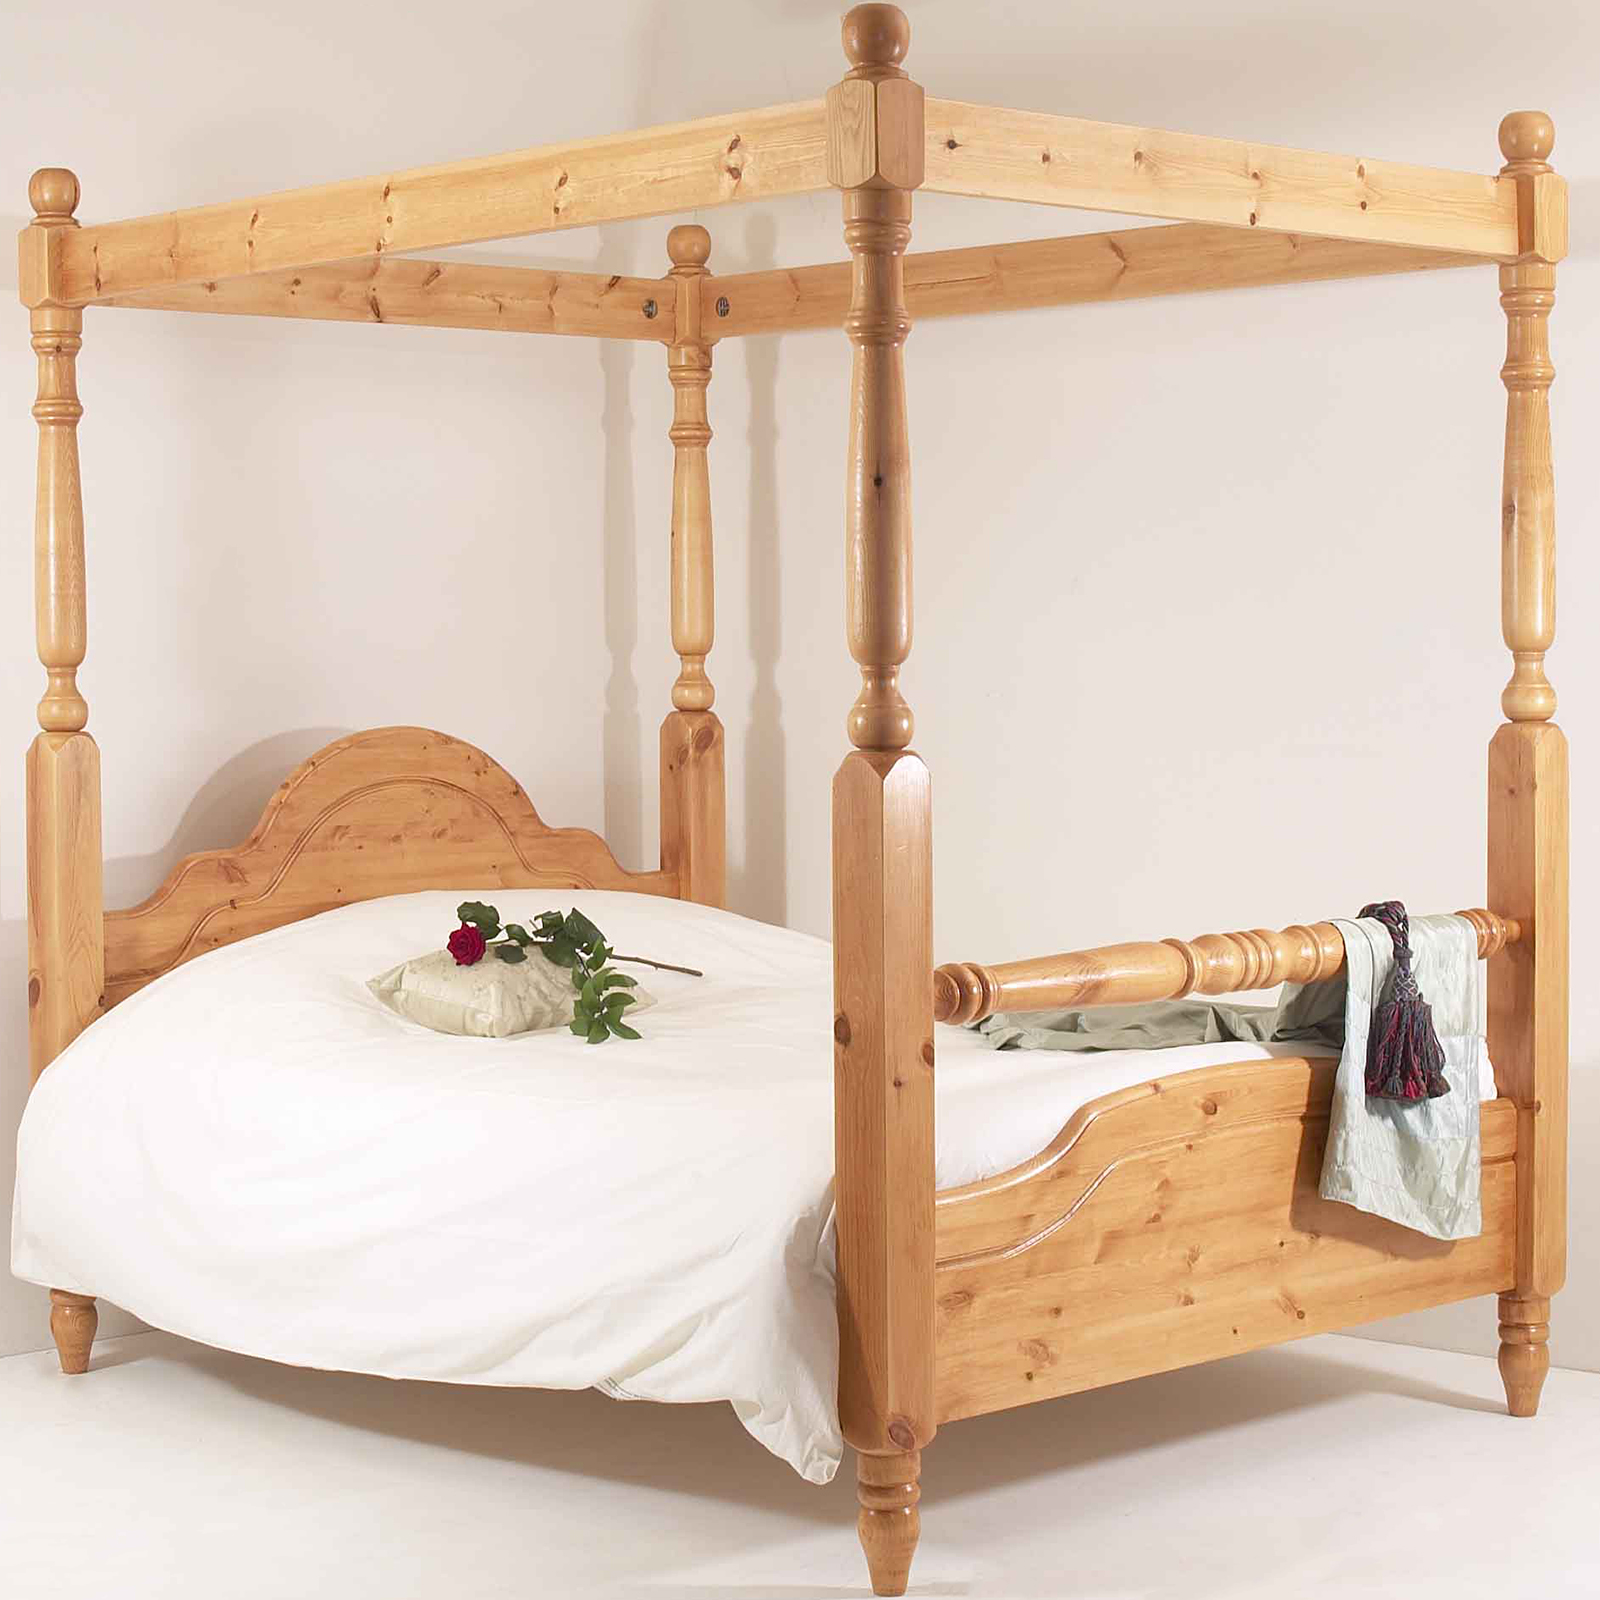 How To Build A Four Poster Bed 4ft6 Double Bed Frame Solid Pine Rail Four Poster Ebay